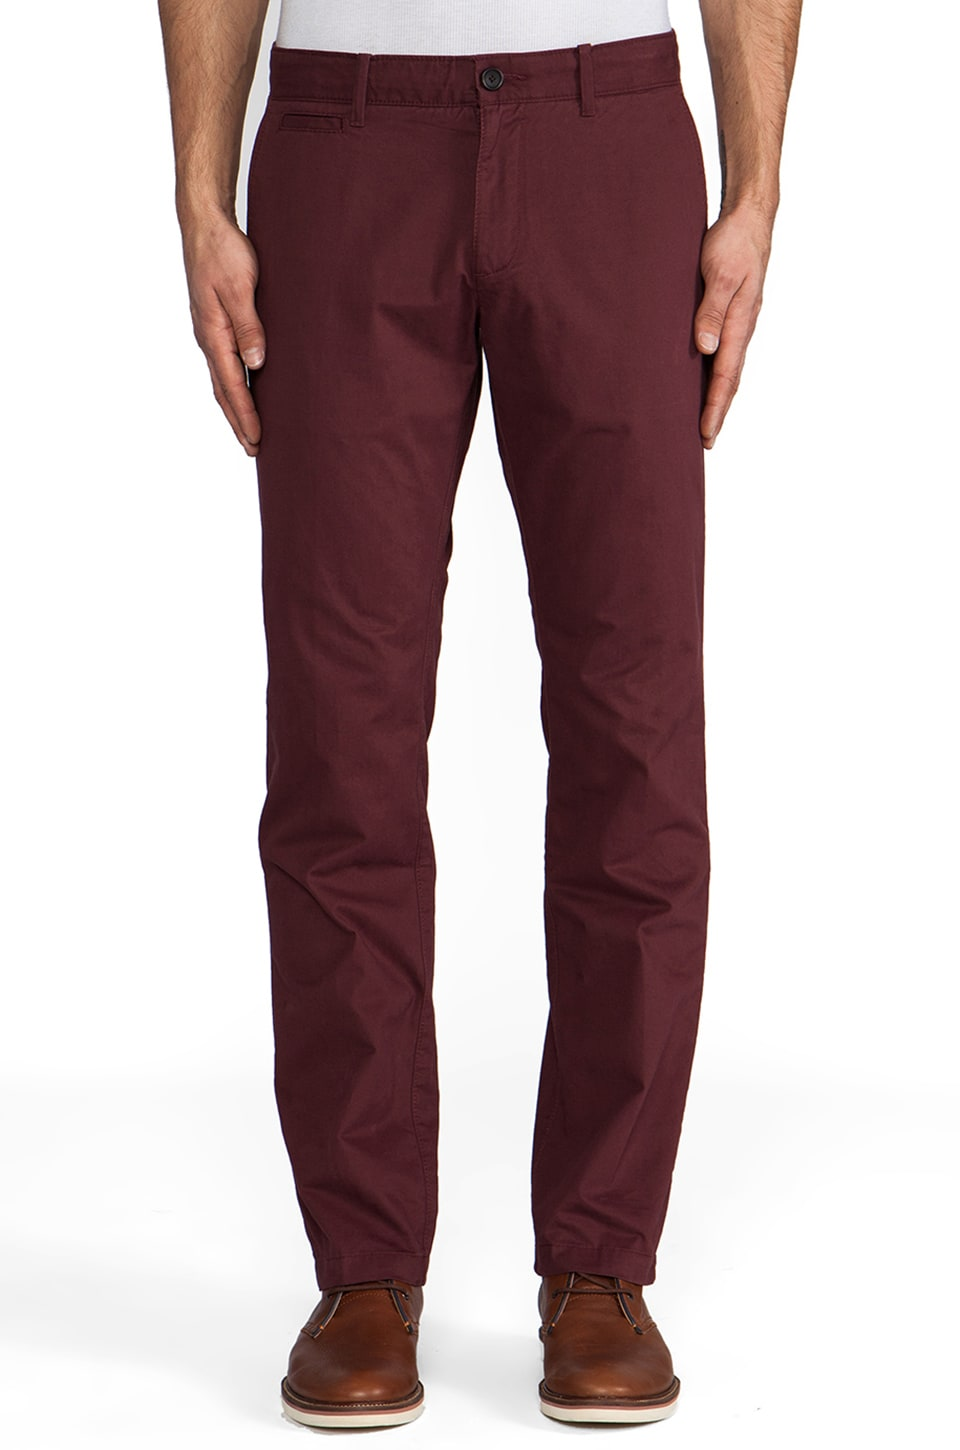 Penguin Straight Fit Chino en Vintage Merlot